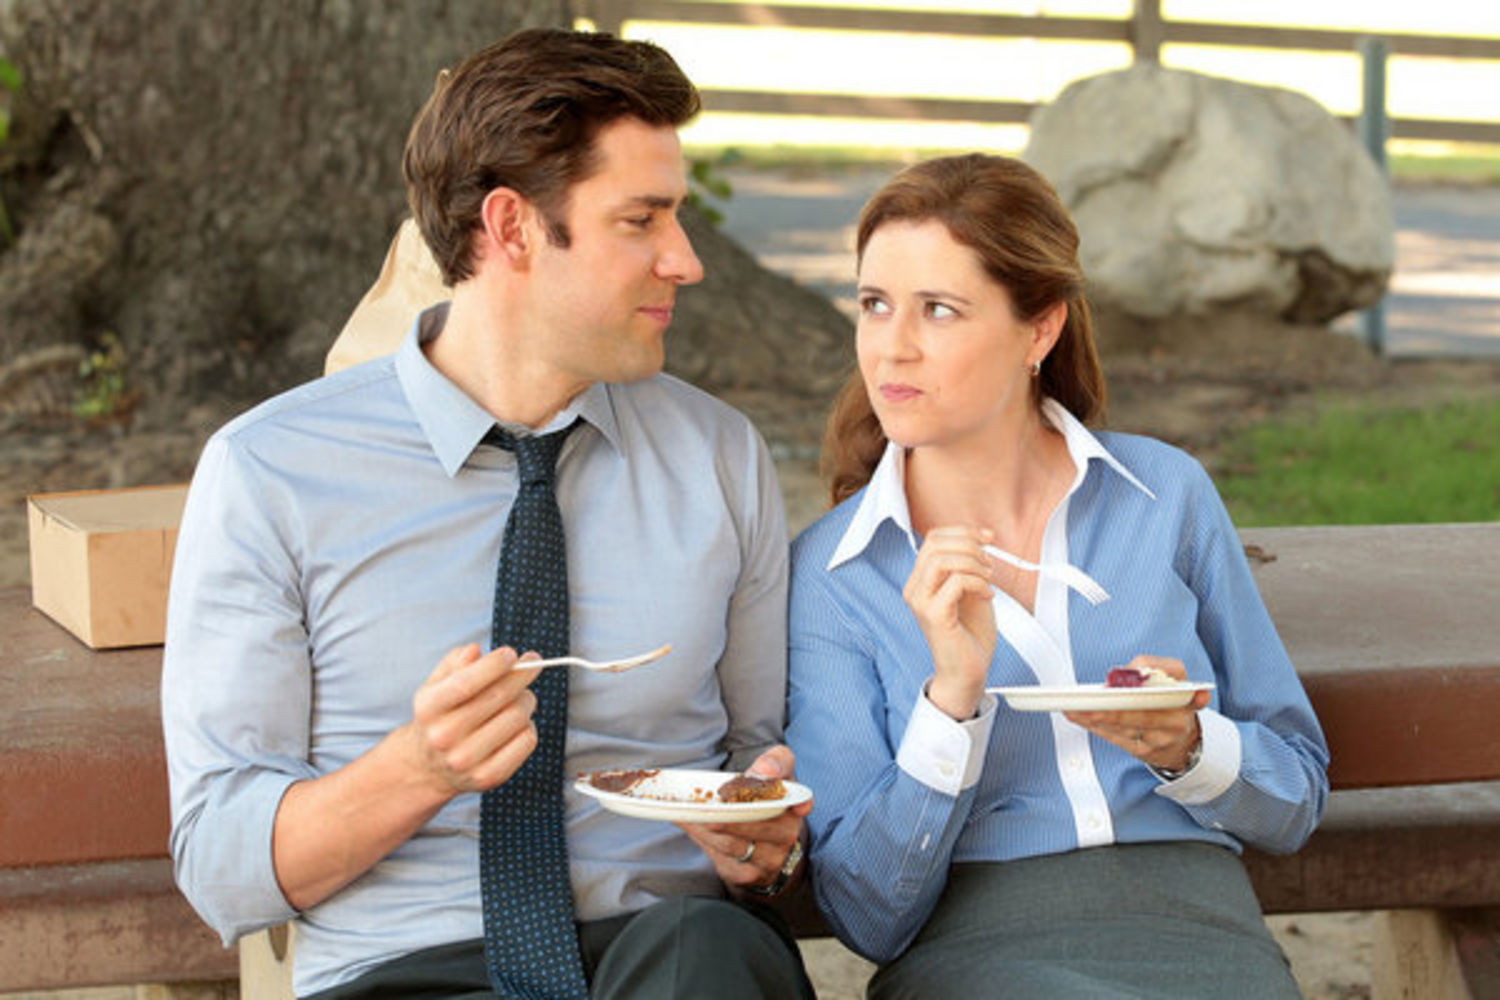 5 non-awkward ways to ask your coworker to hang out outside of work